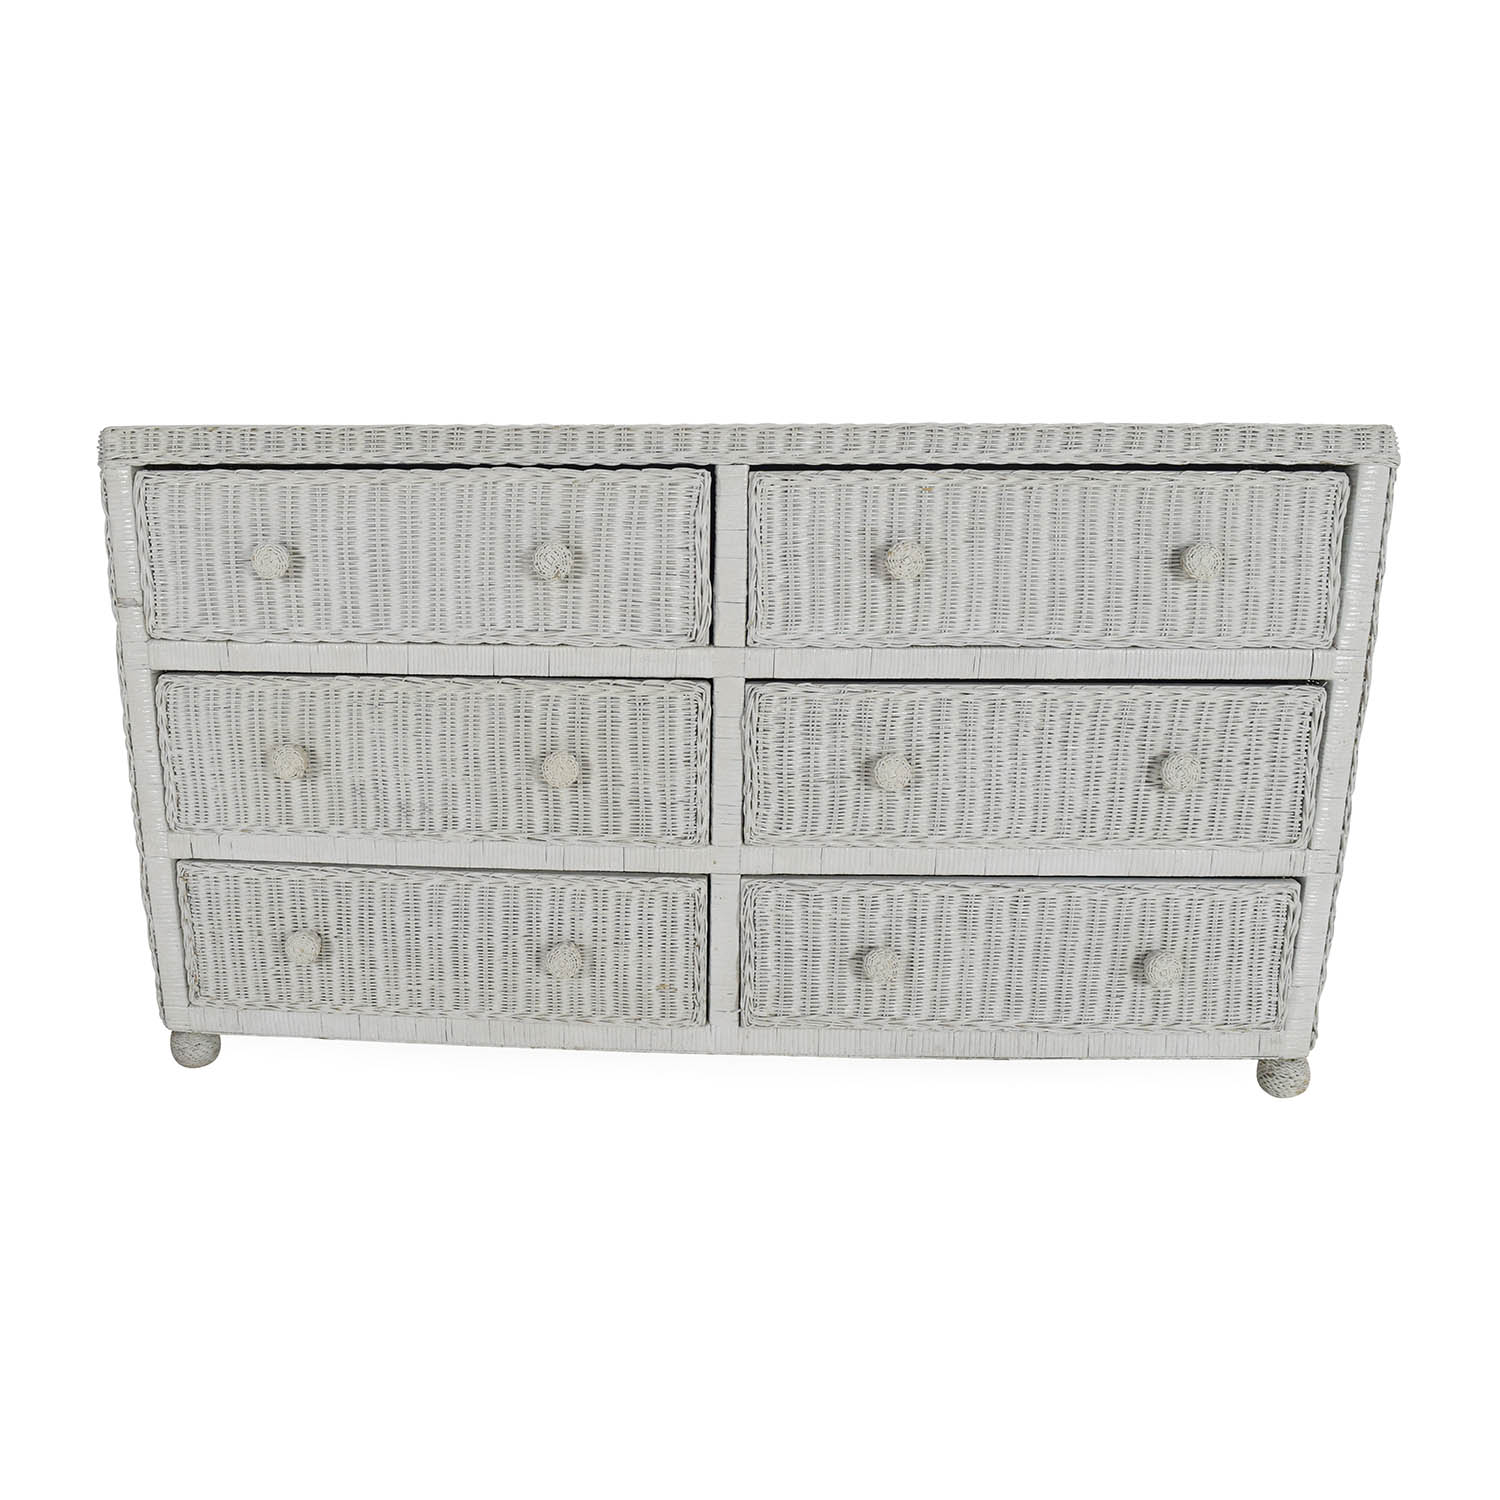 Elana Mar Elana Mar White Wicker Dresser on sale